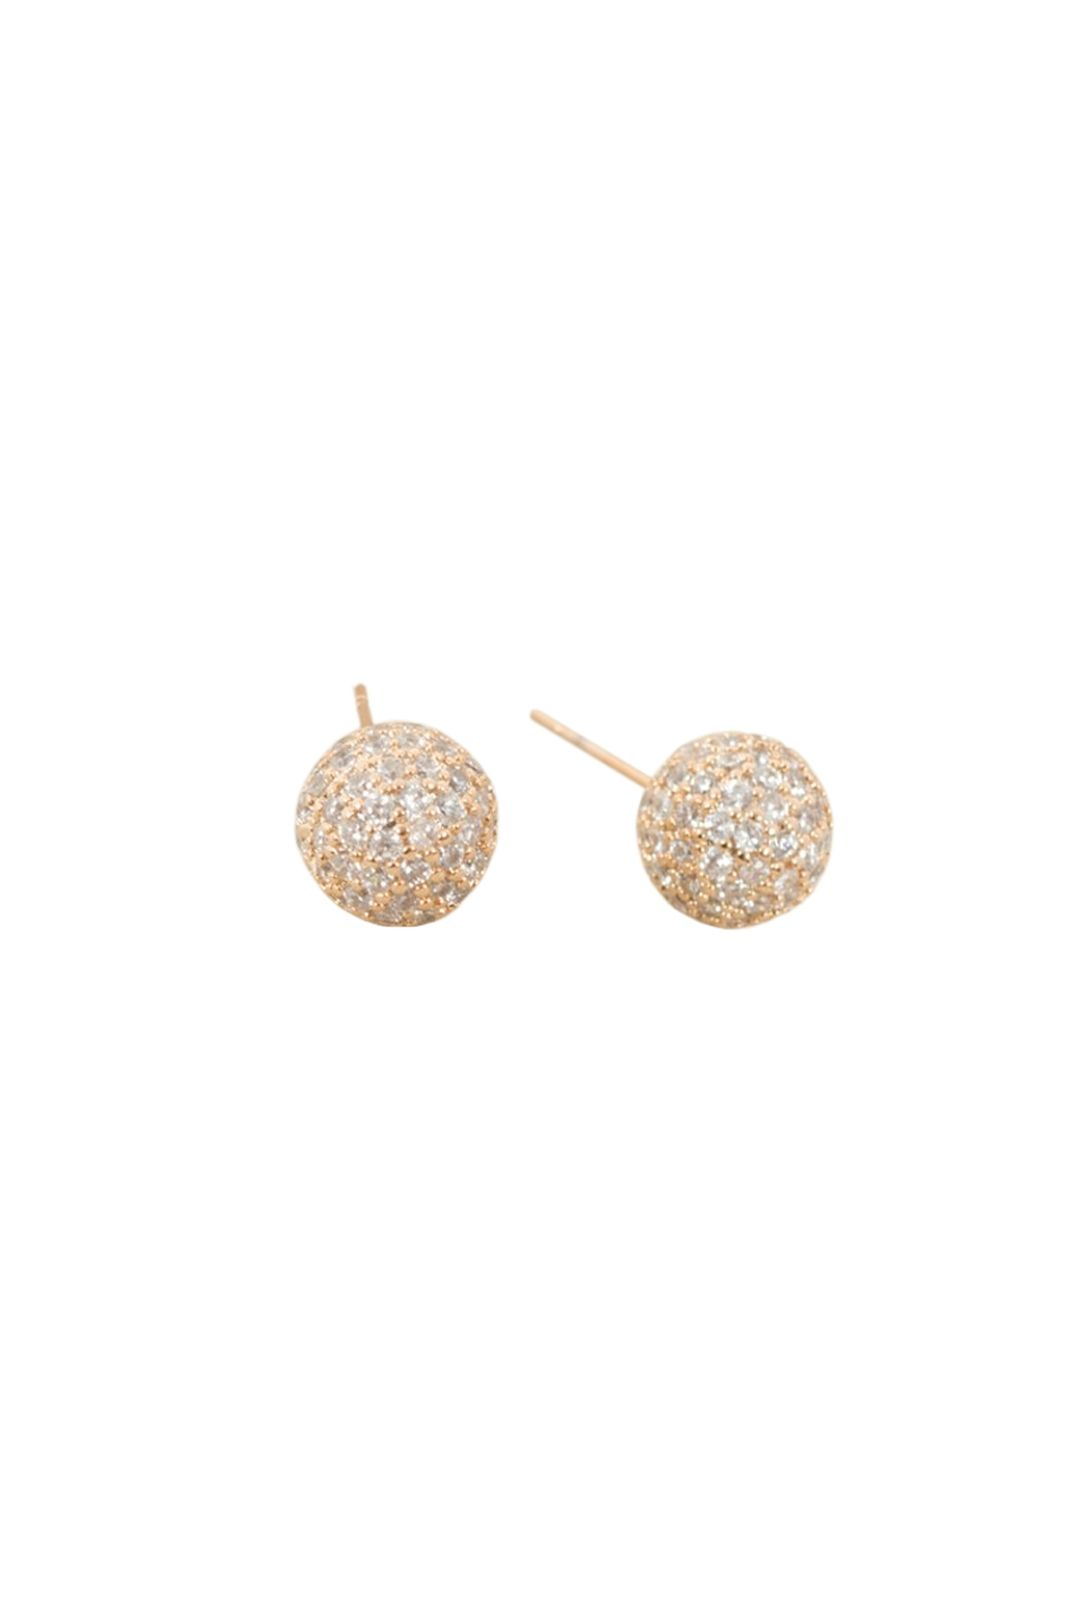 Adorne - Diamante Covered Ball Stud Earring - Gold - Front